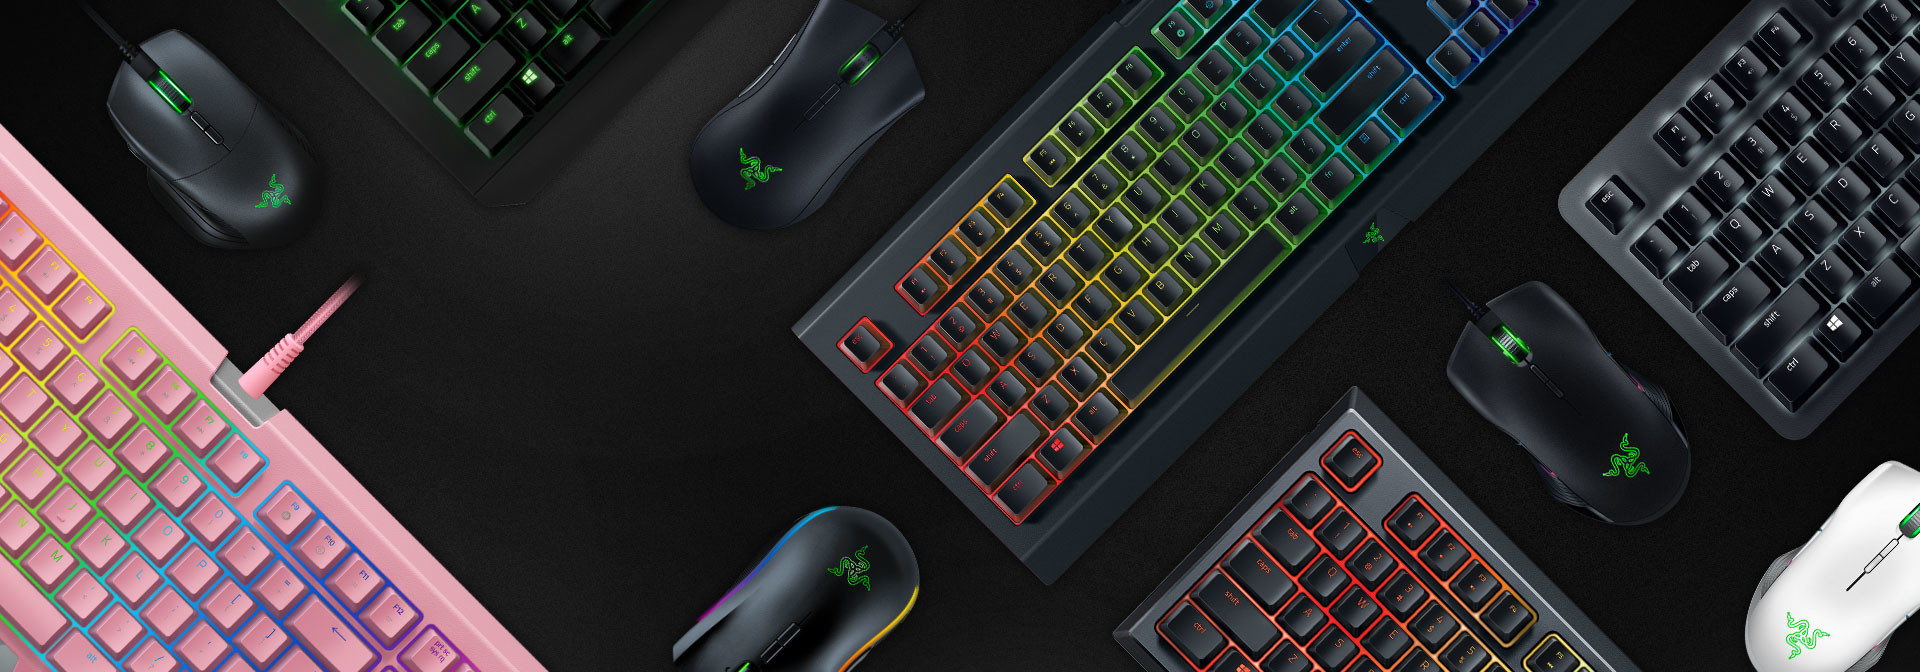 f5aacd2bbb6 Razer will reveal the first mouse and keyboard for Xbox One at CES - Neowin